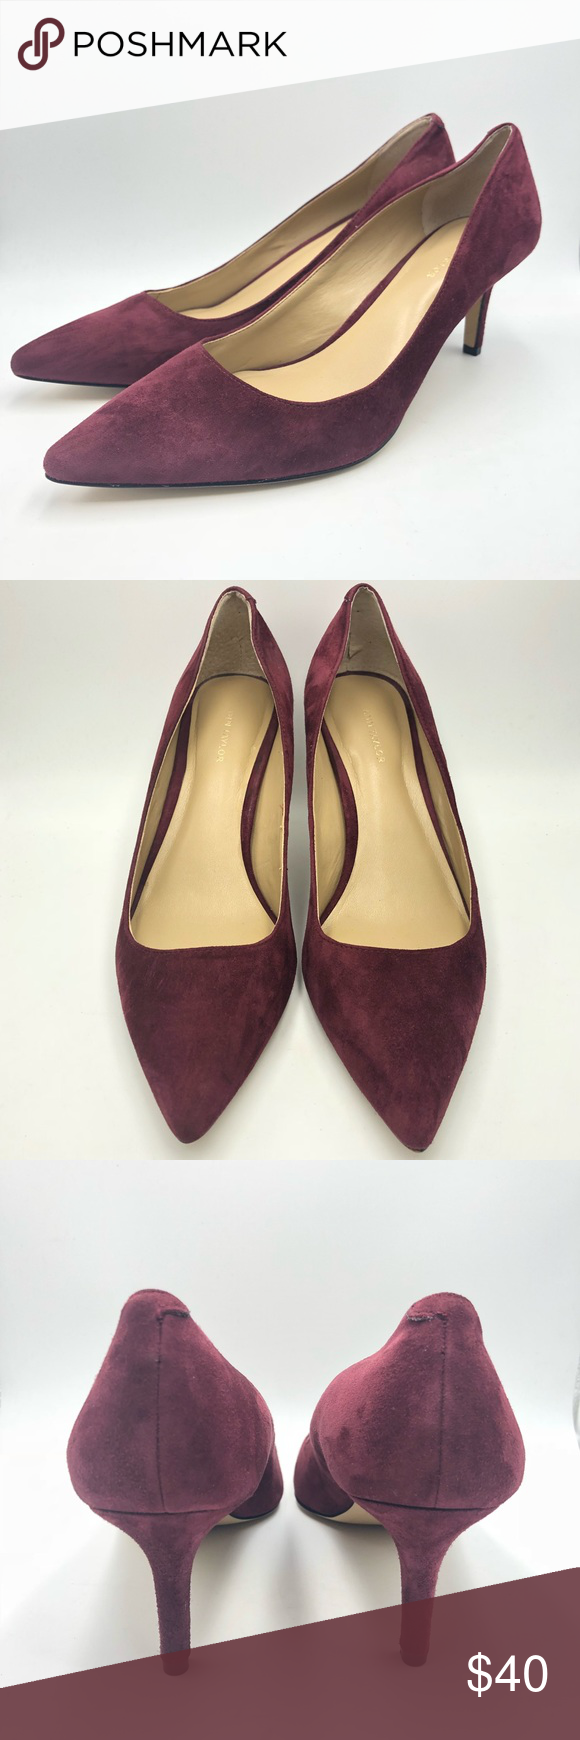 165bf45d74a Ann Taylor Eryn Suede Pumps Great pre owned condition. Berry color Size 8 Suede  Ann Taylor Shoes Heels